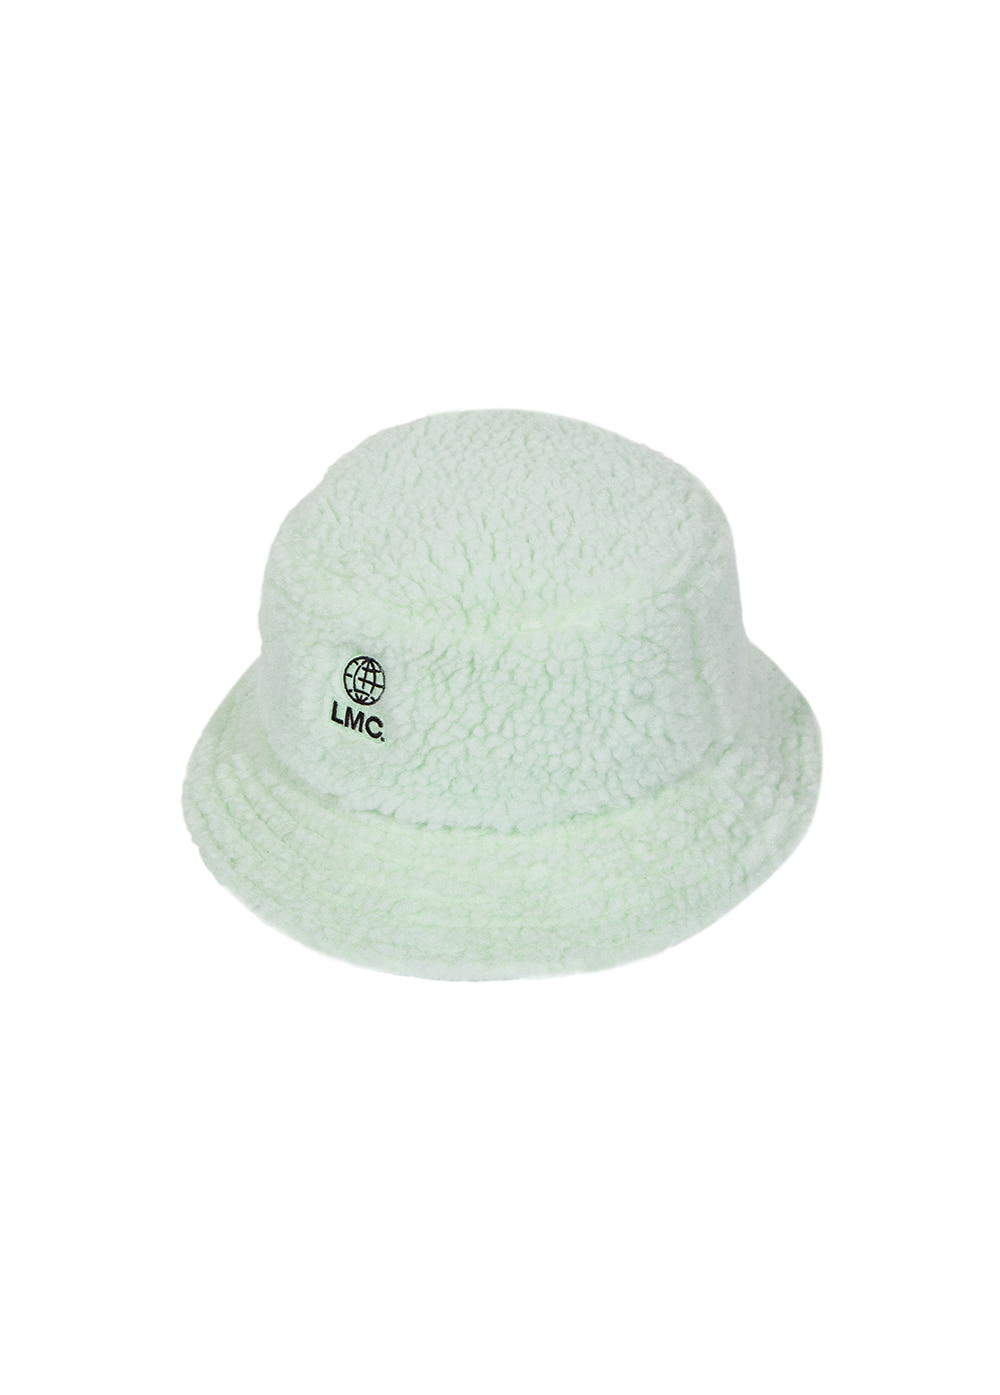 LMC BOA FLEECE BUCKET HAT mint